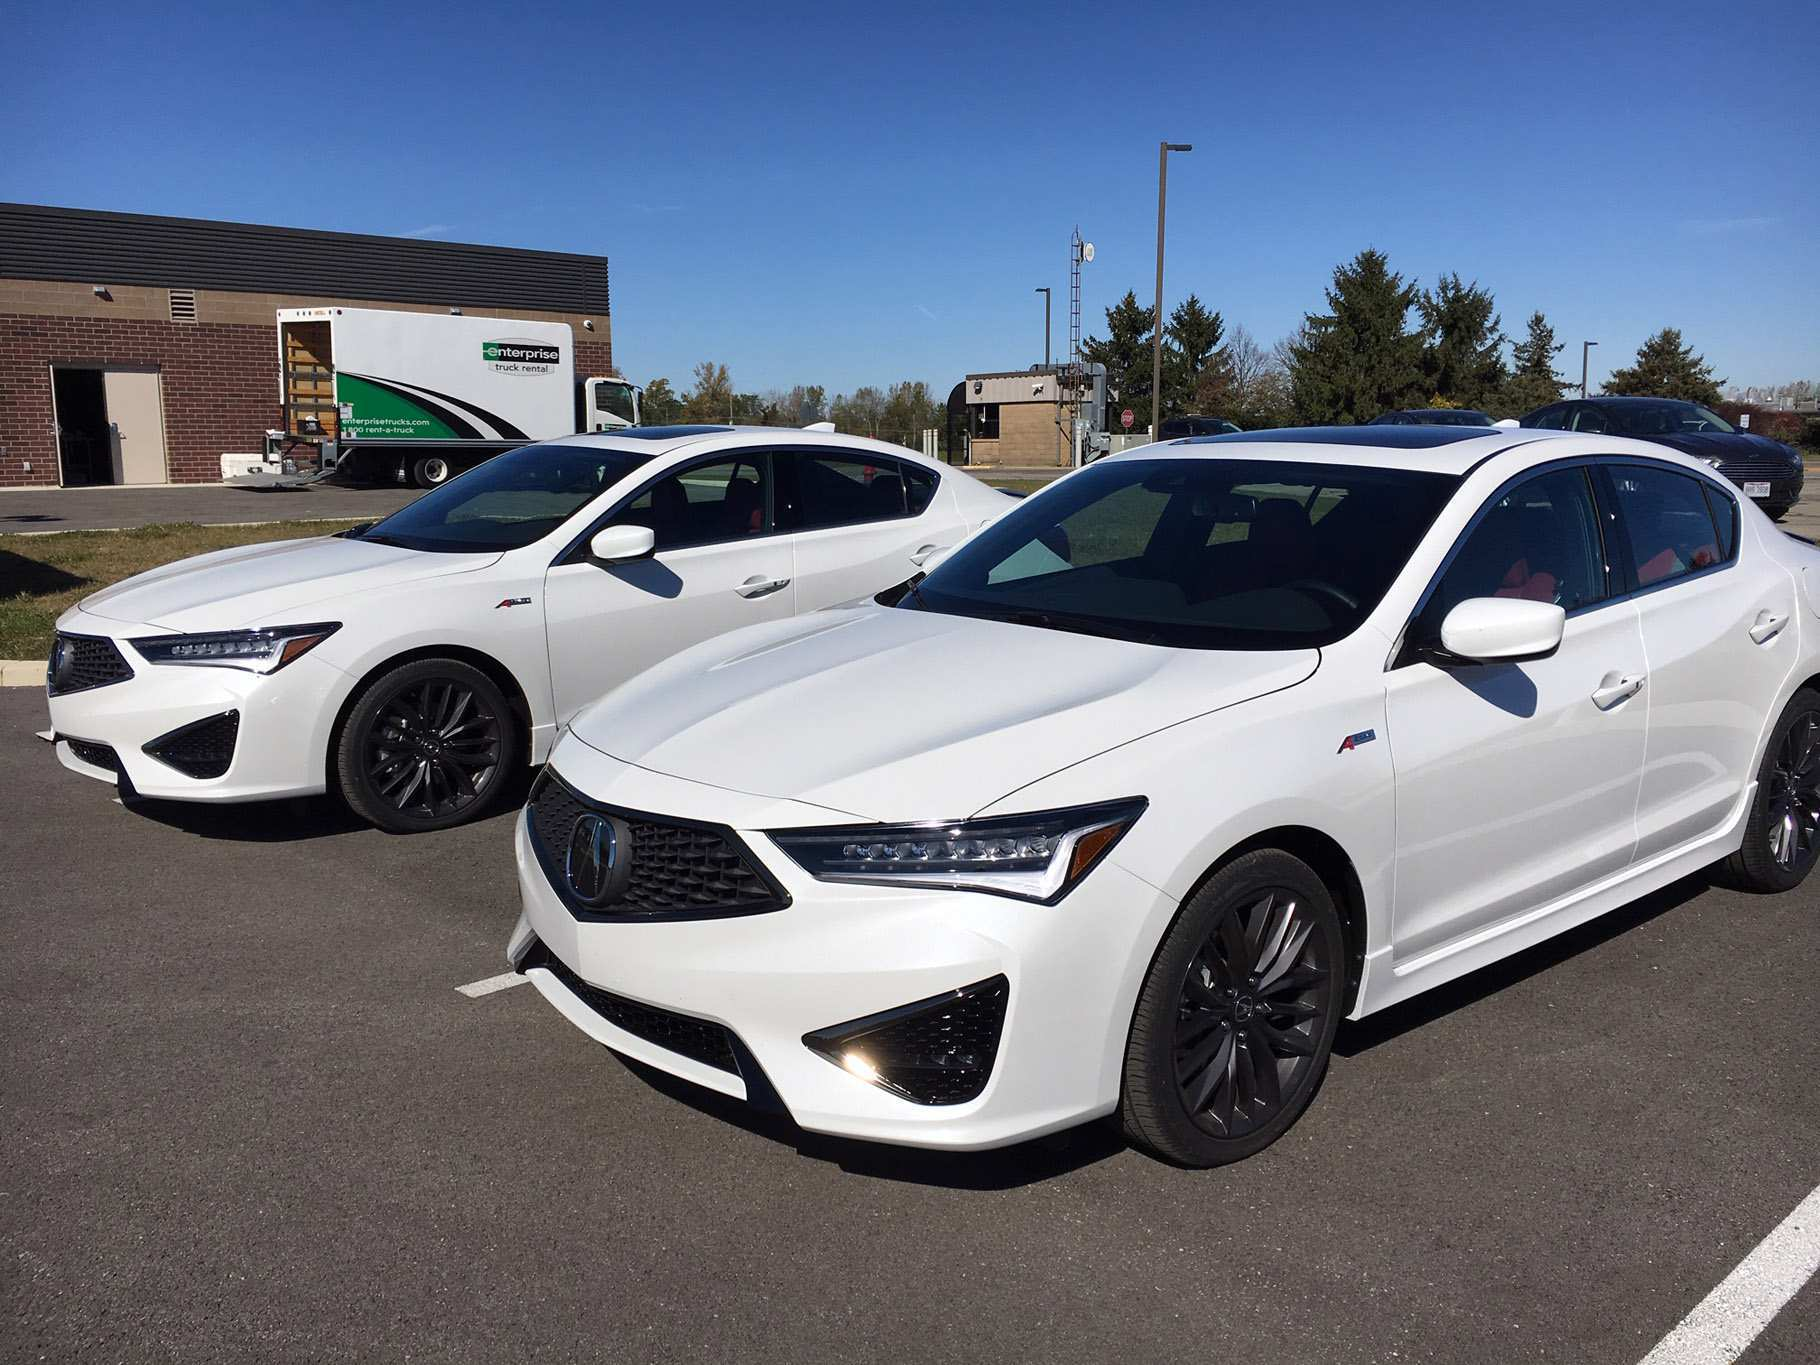 67 All New Acura Legend 2020 First Drive for Acura Legend 2020